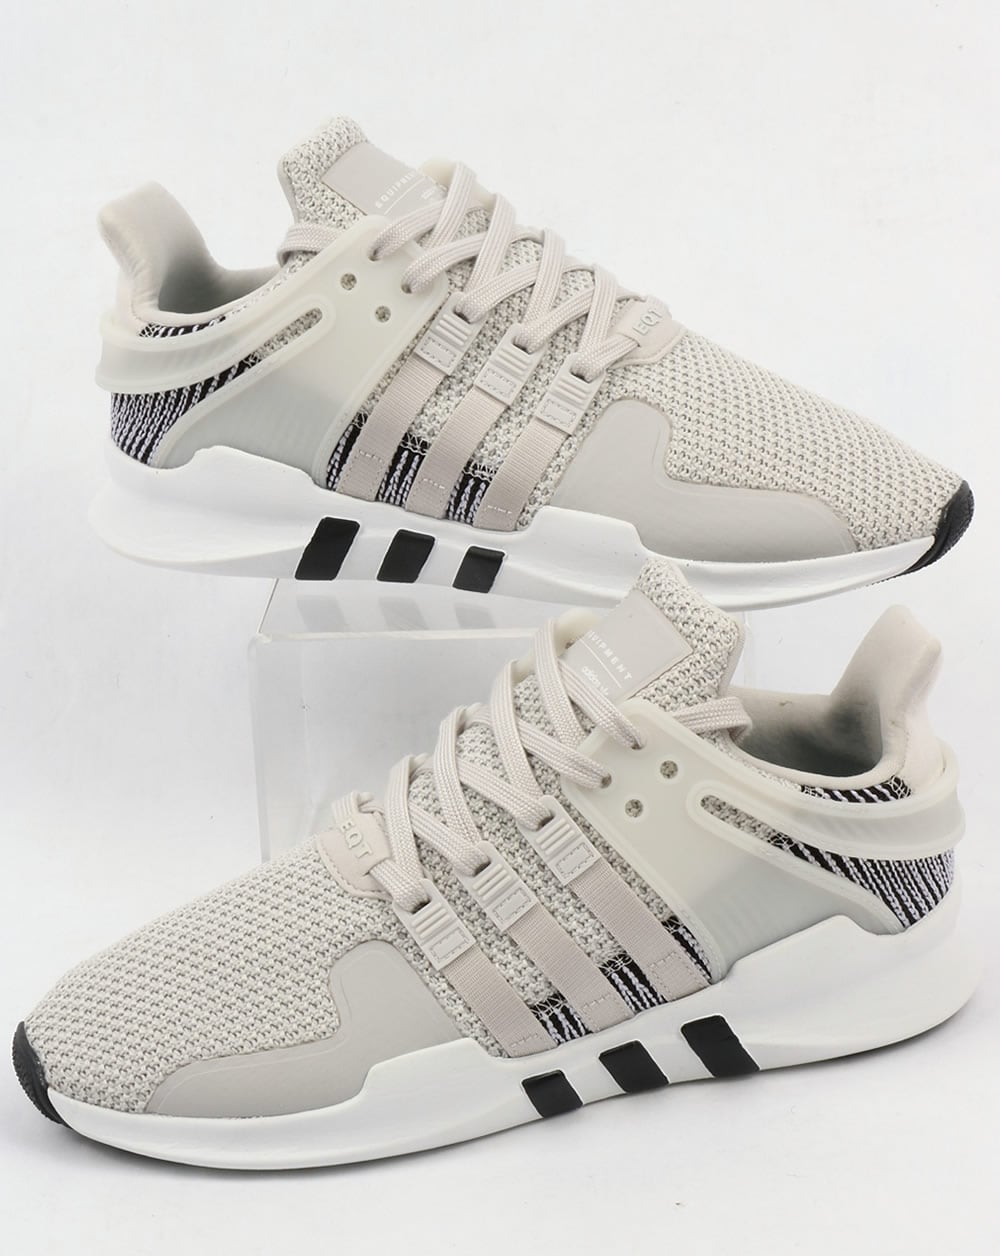 733ca8149f2 adidas Trainers Adidas EQT Support Adv Trainers White White Grey